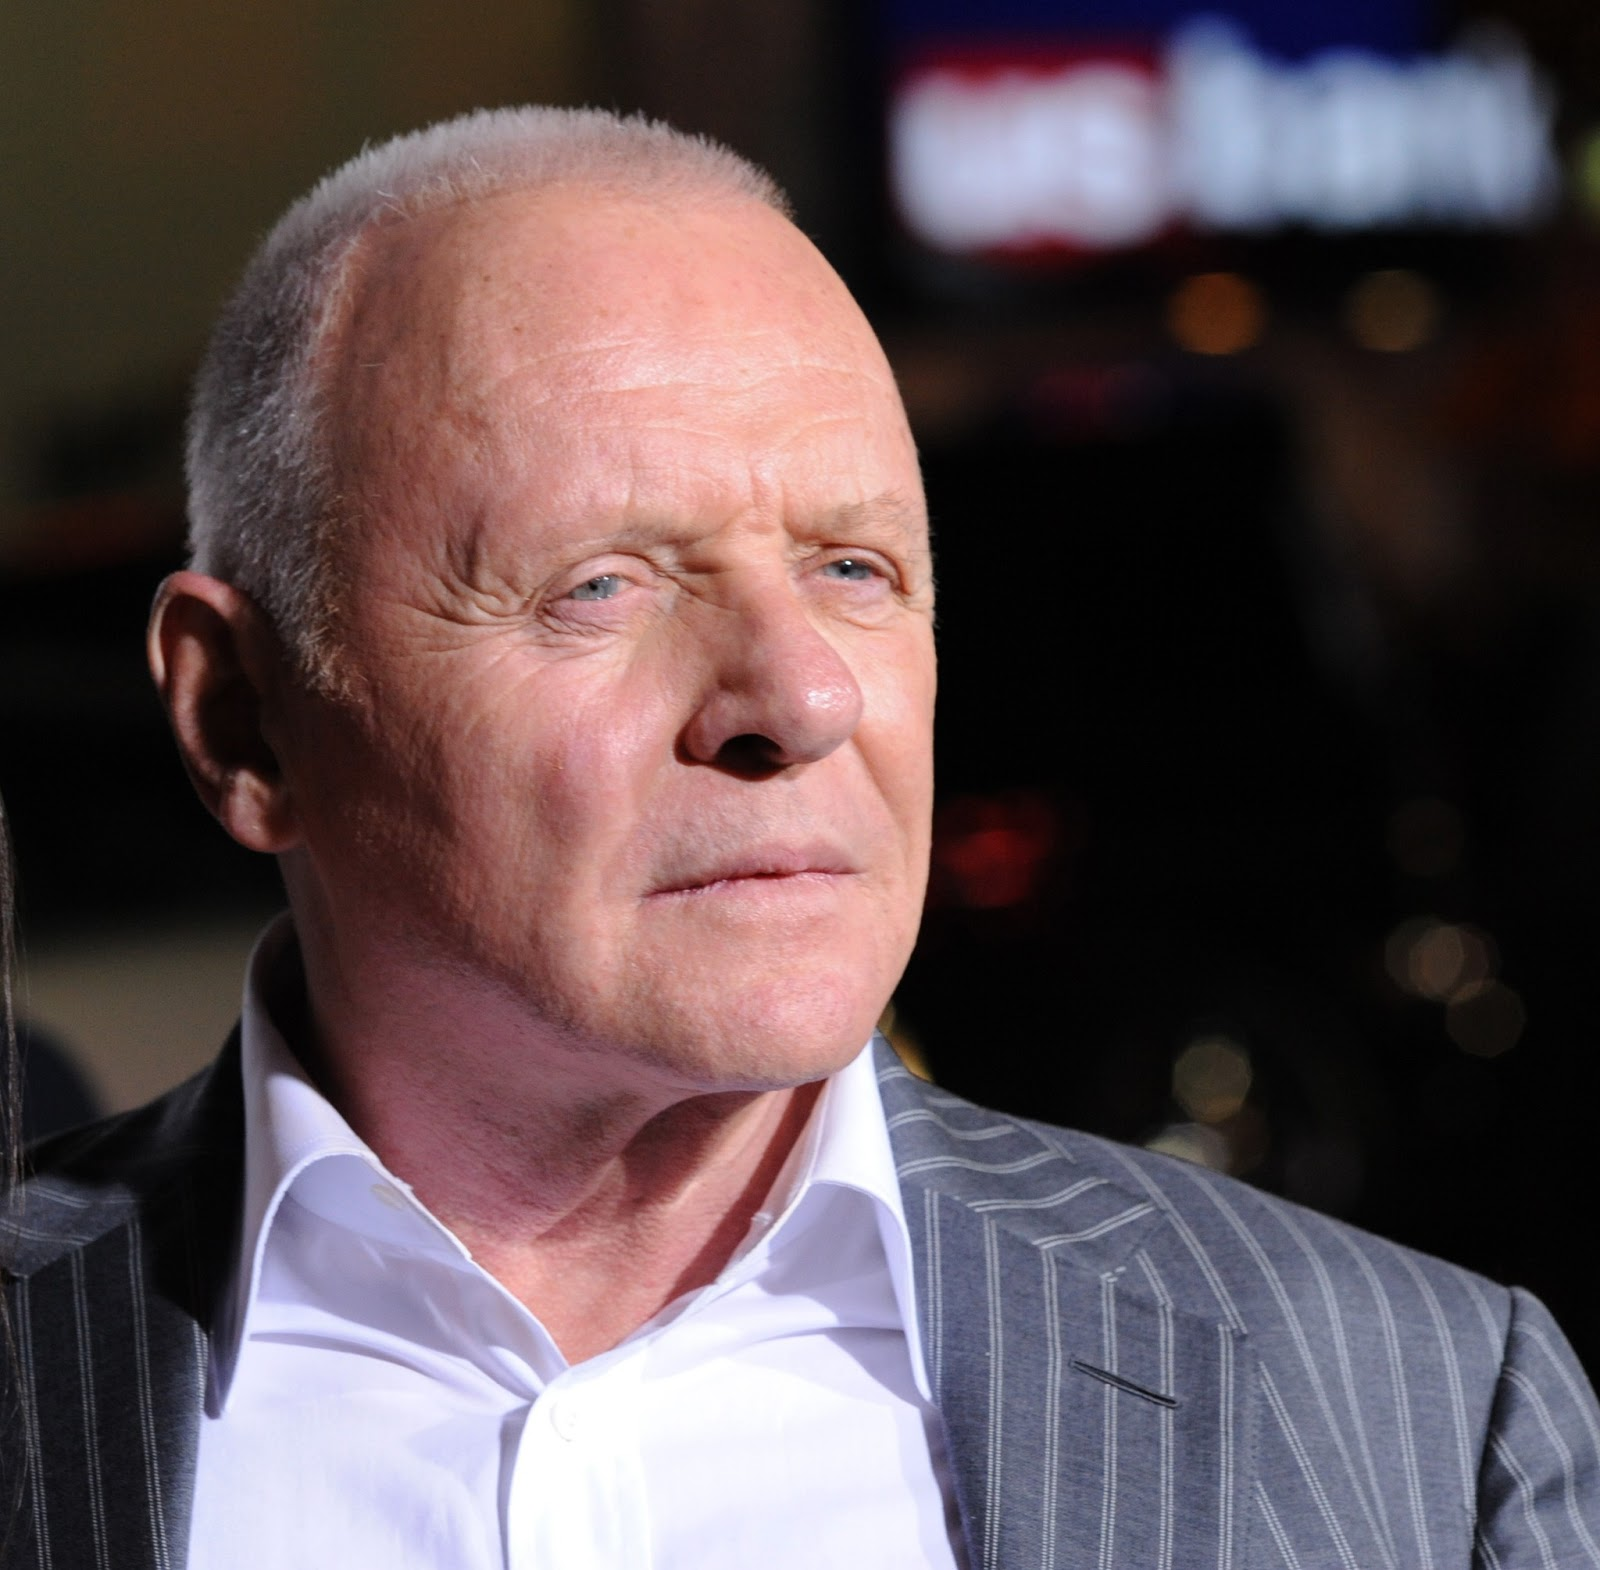 Awesome People: Anthon... Anthony Hopkins